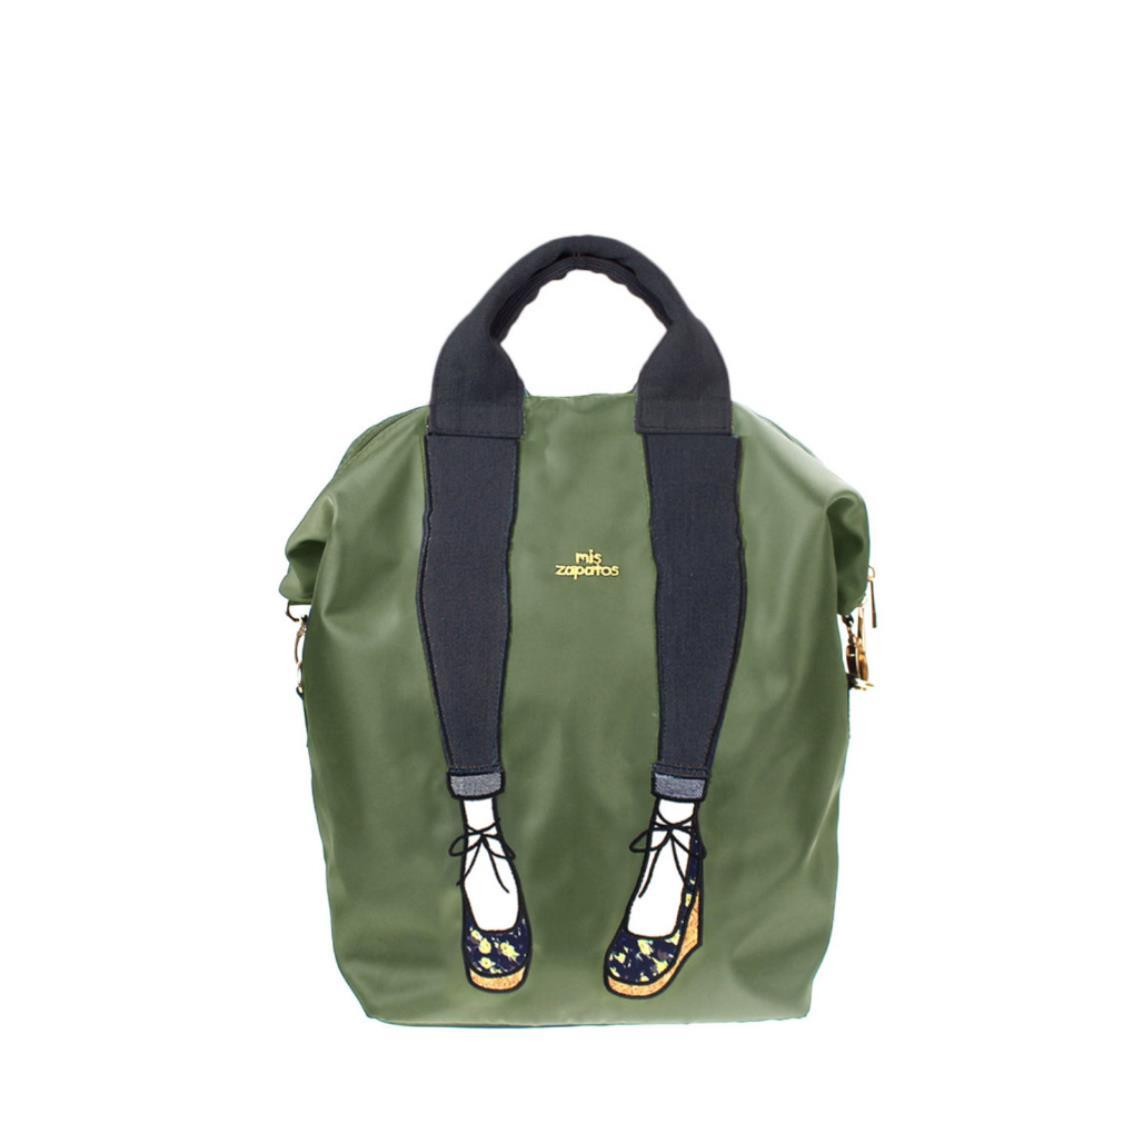 3-Way Use Jeans with Wedges Backpack Khaki